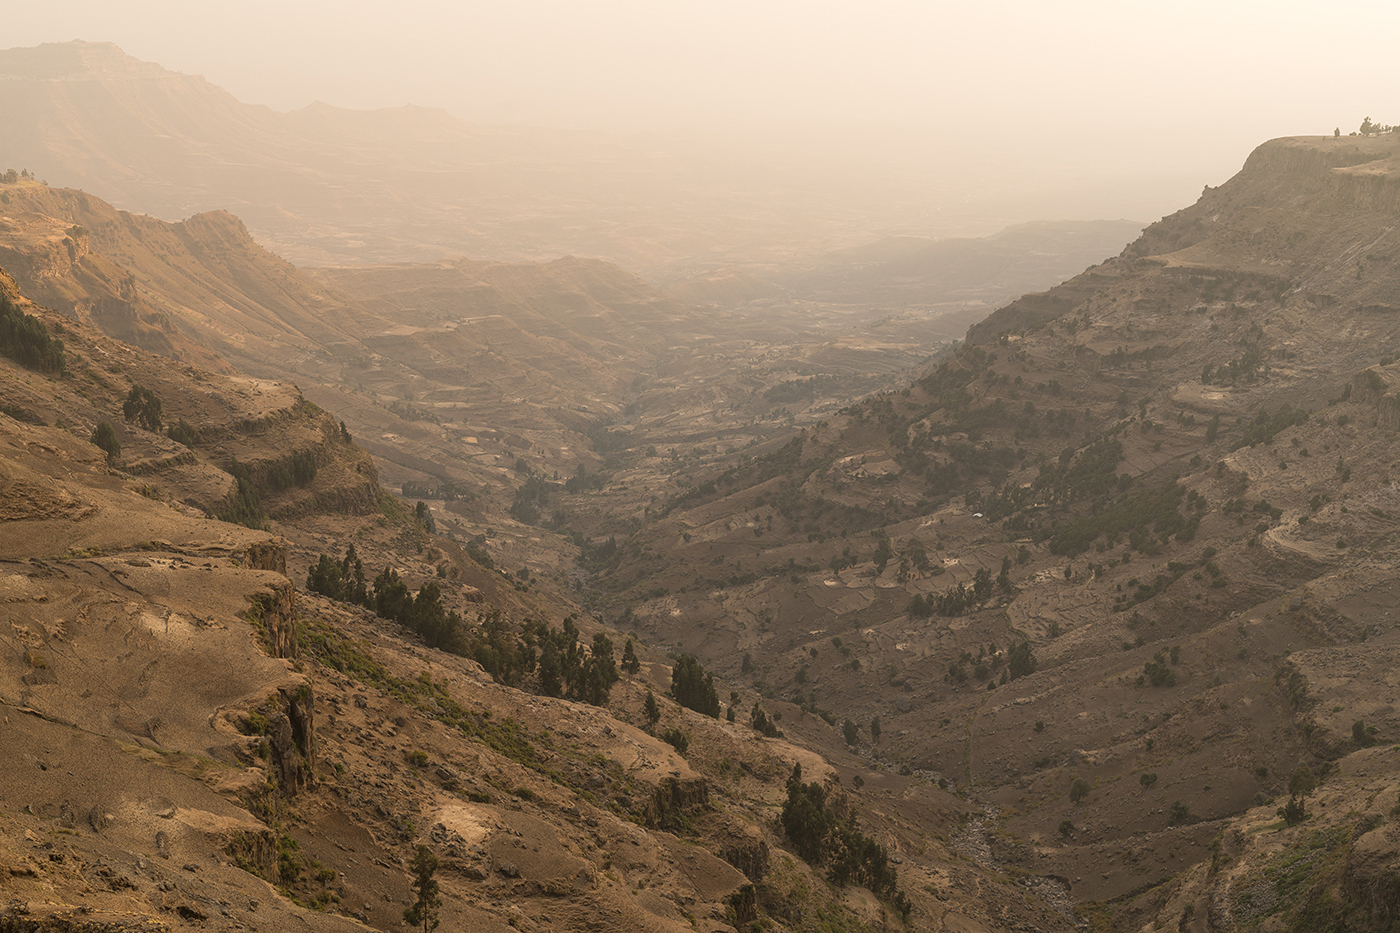 Looking west into the Semien Wollo region of the Amhara highlands.